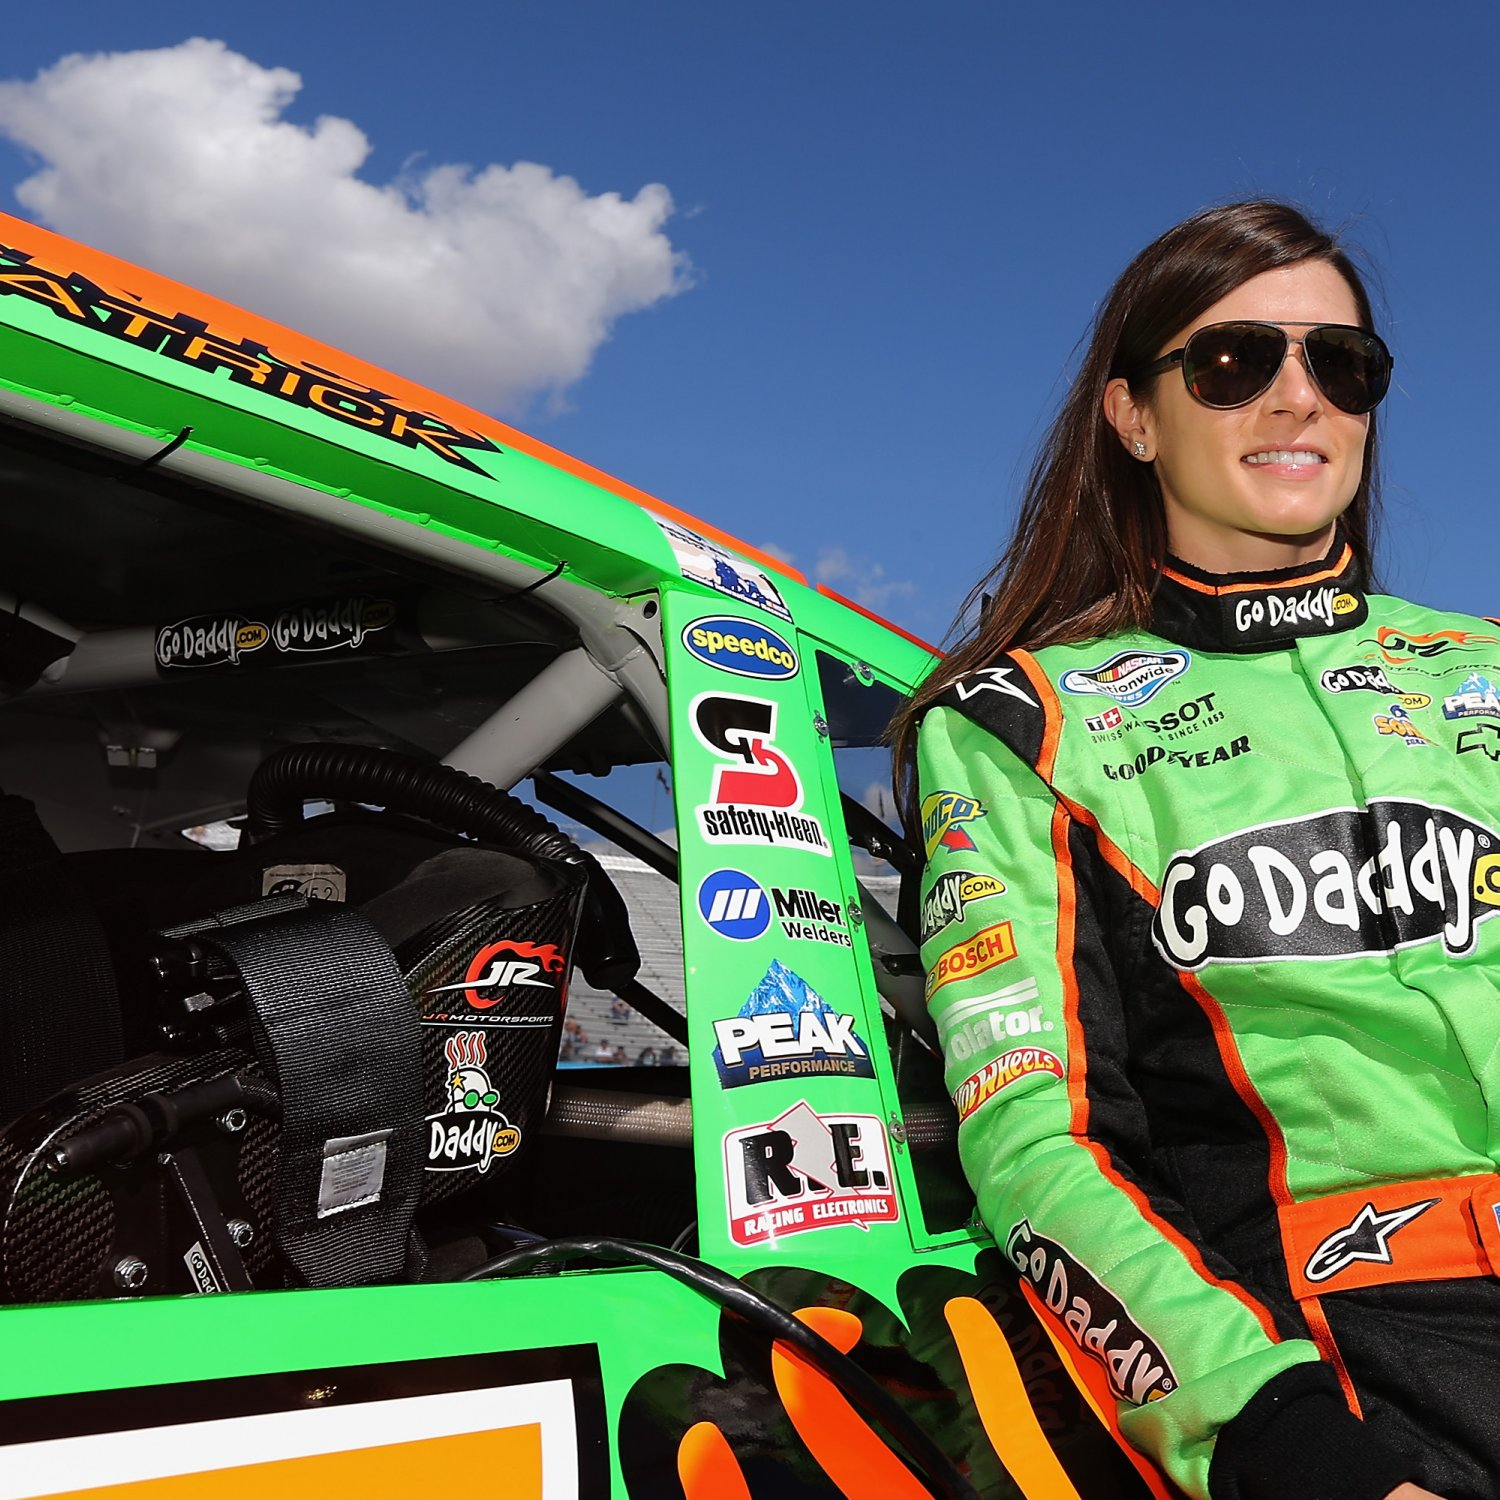 Top 10 Sprint Cup : Nascar sprint cup tracks that set up well for danica